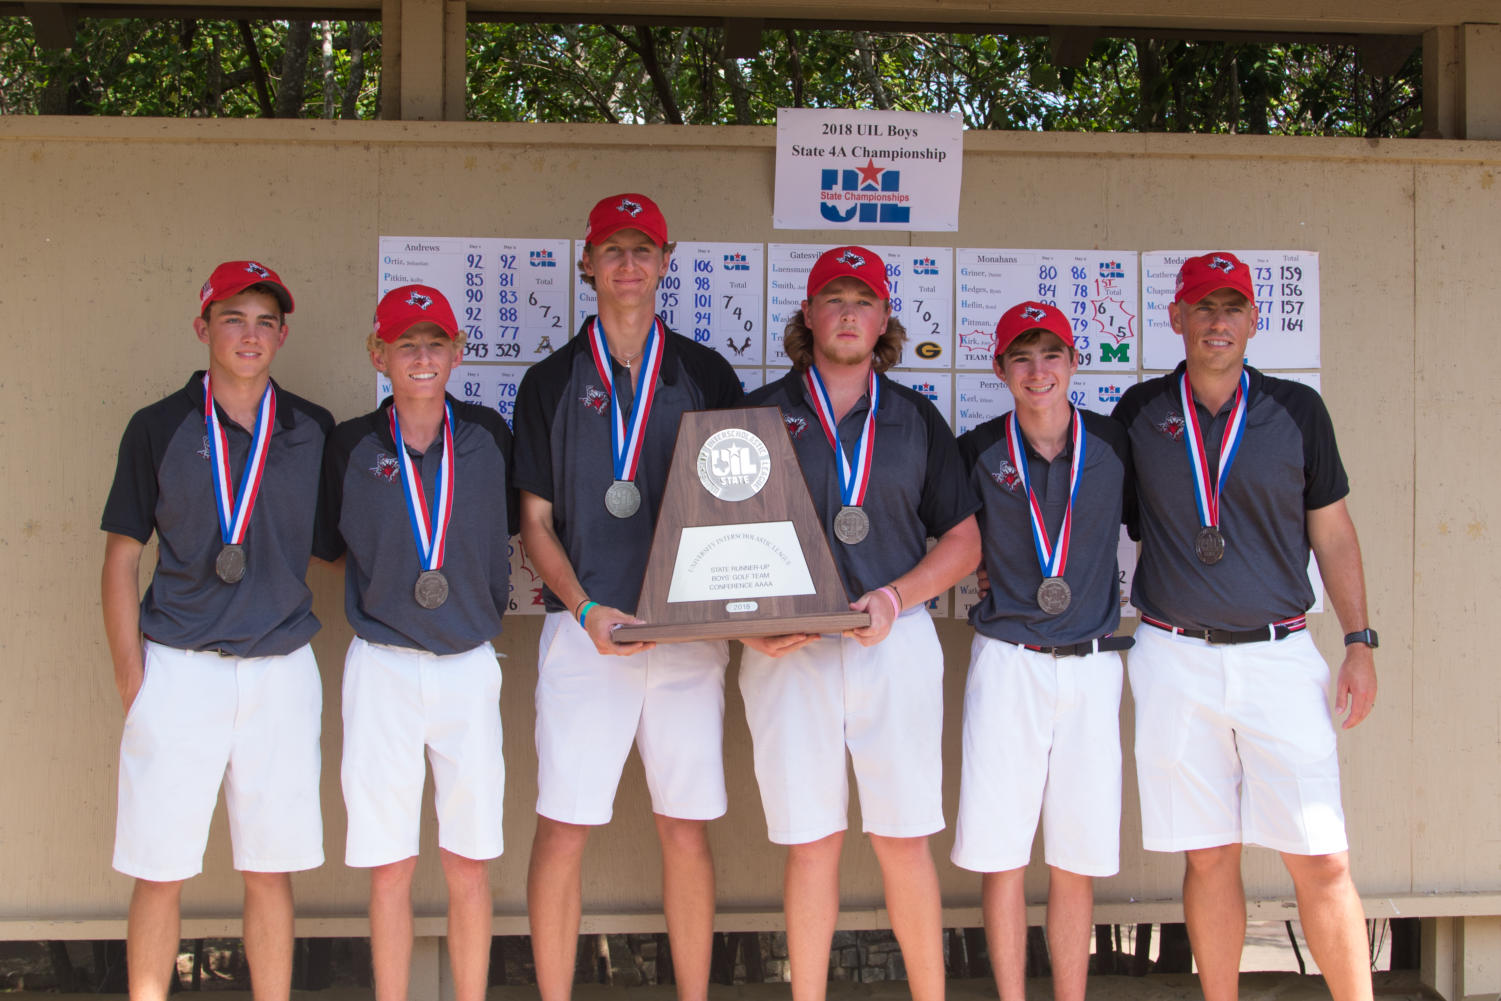 The Eagles compete on day two of the UIL State Tournament on May 15, 2018. UIL State Golf Day Two at Horseshoe Bay in Marble Falls, Texas, on May 15, 2018. (Hannah Wood) (Campbell Wilmot/ The Talon News)